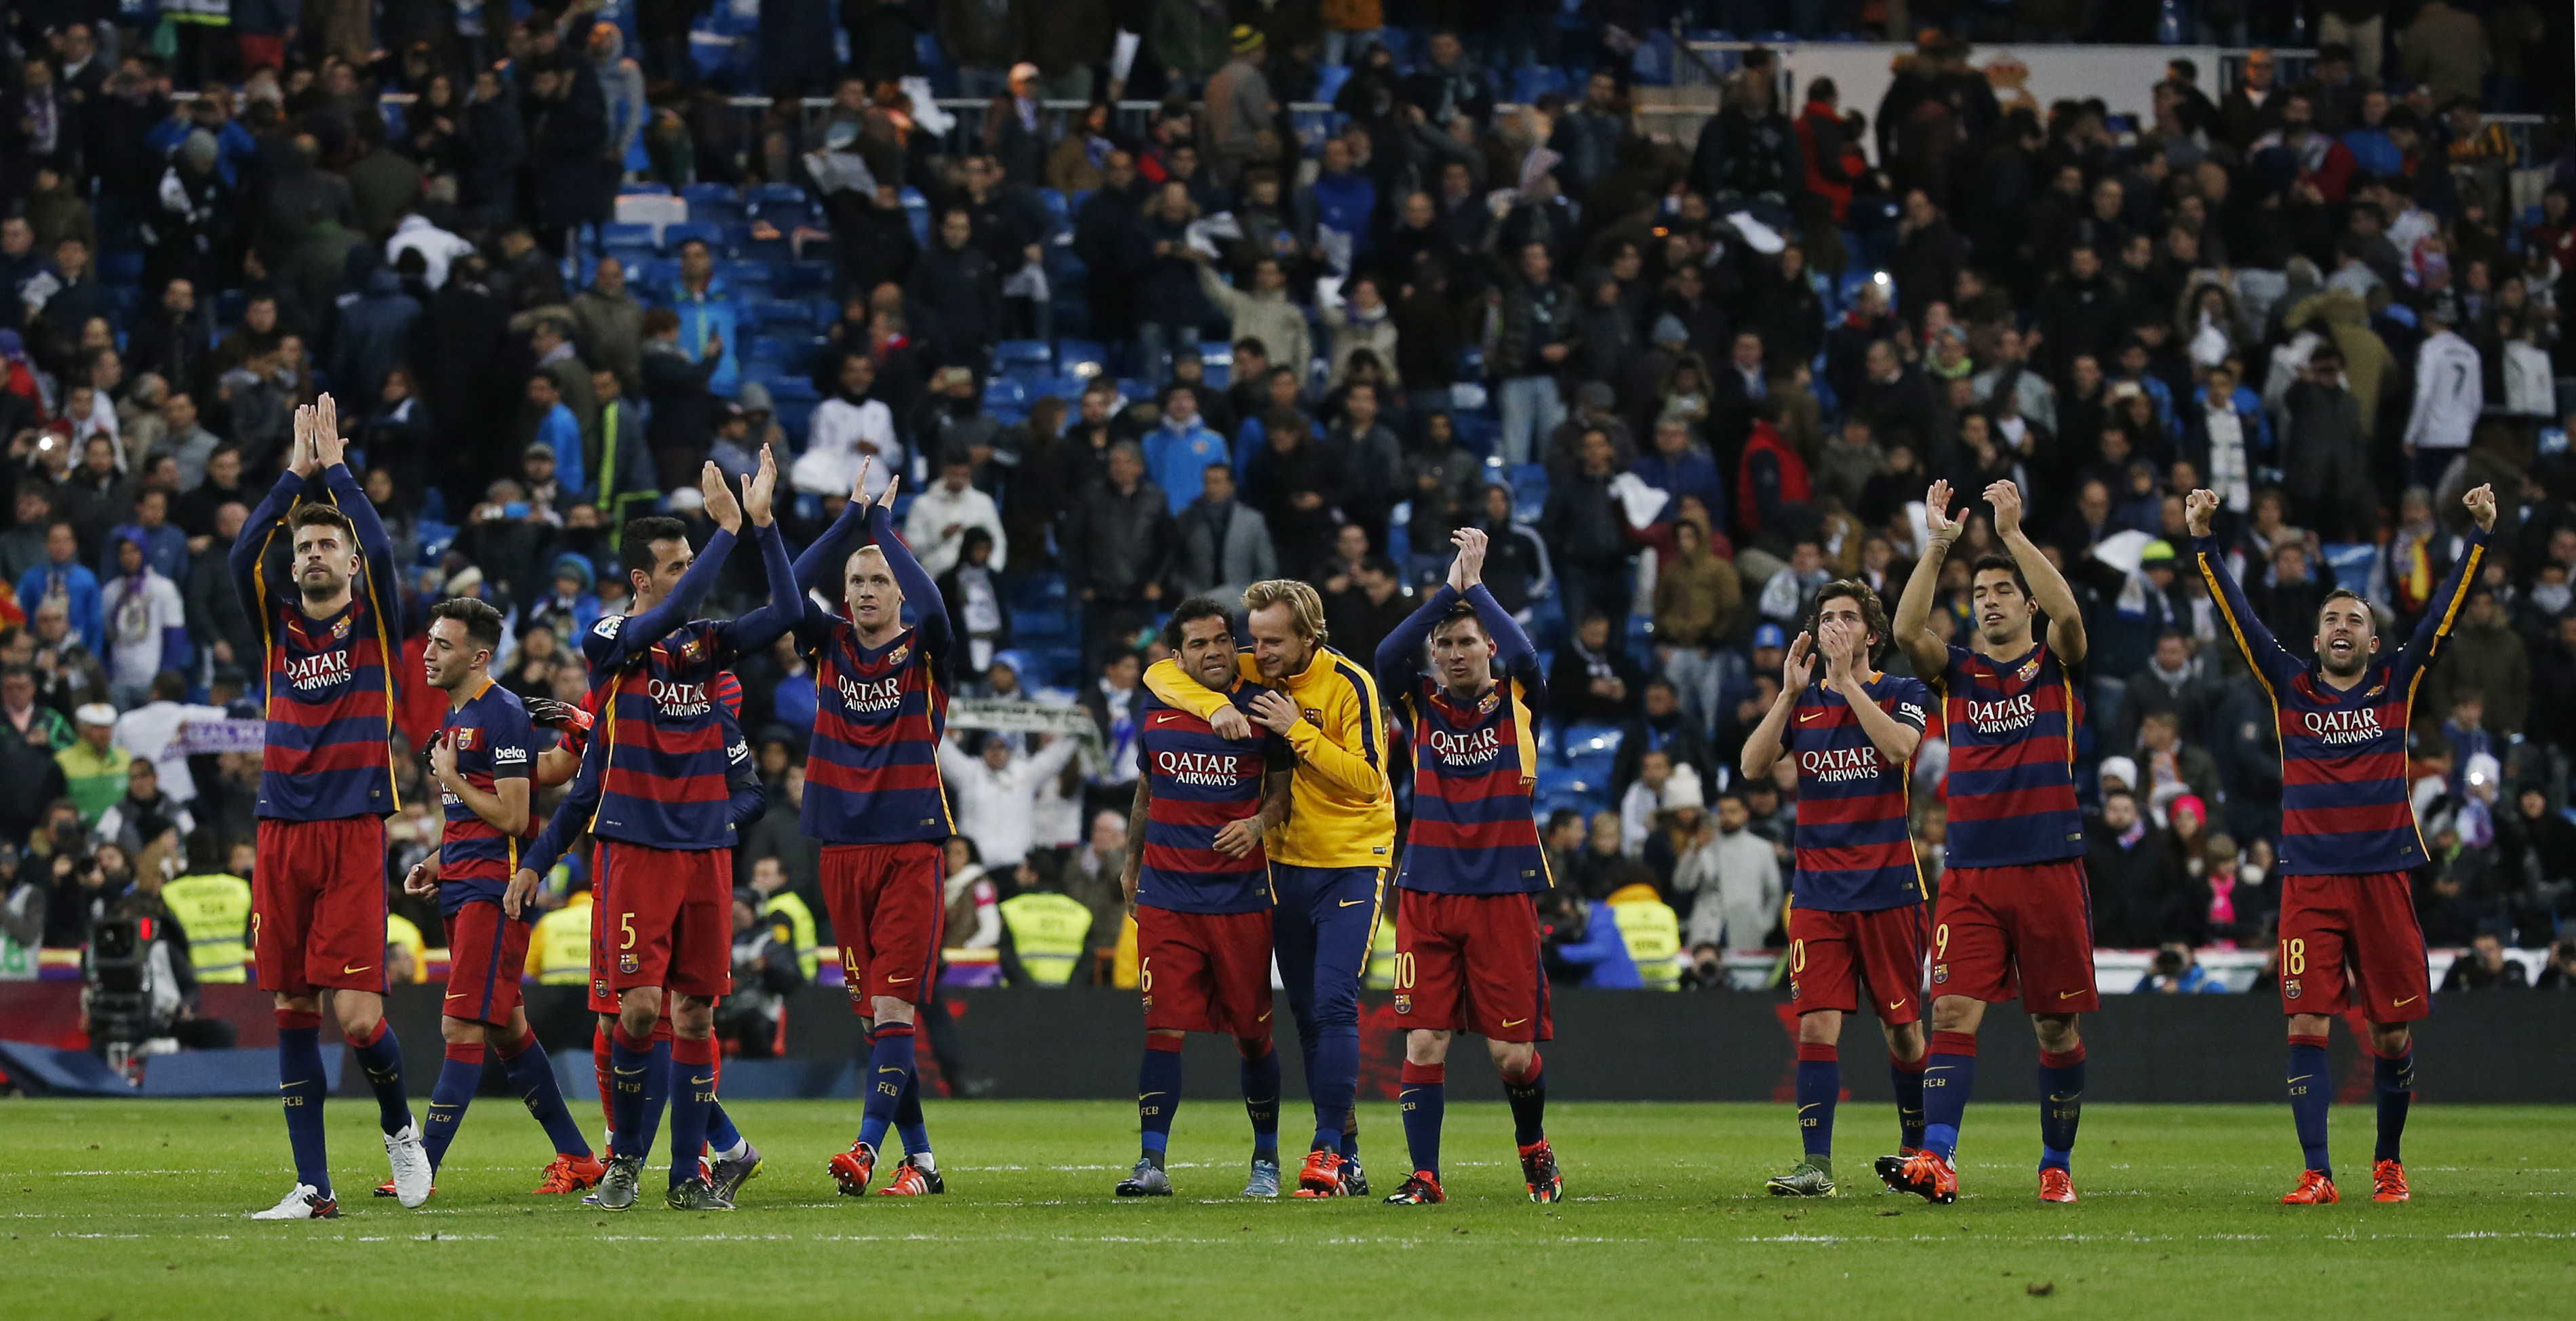 Football - Real Madrid v Barcelona - Liga BBVA - Santiago Bernabeu - 21/11/15 Barcelona players applaud the fans at the end of the match Reuters / Sergio Perez Livepic